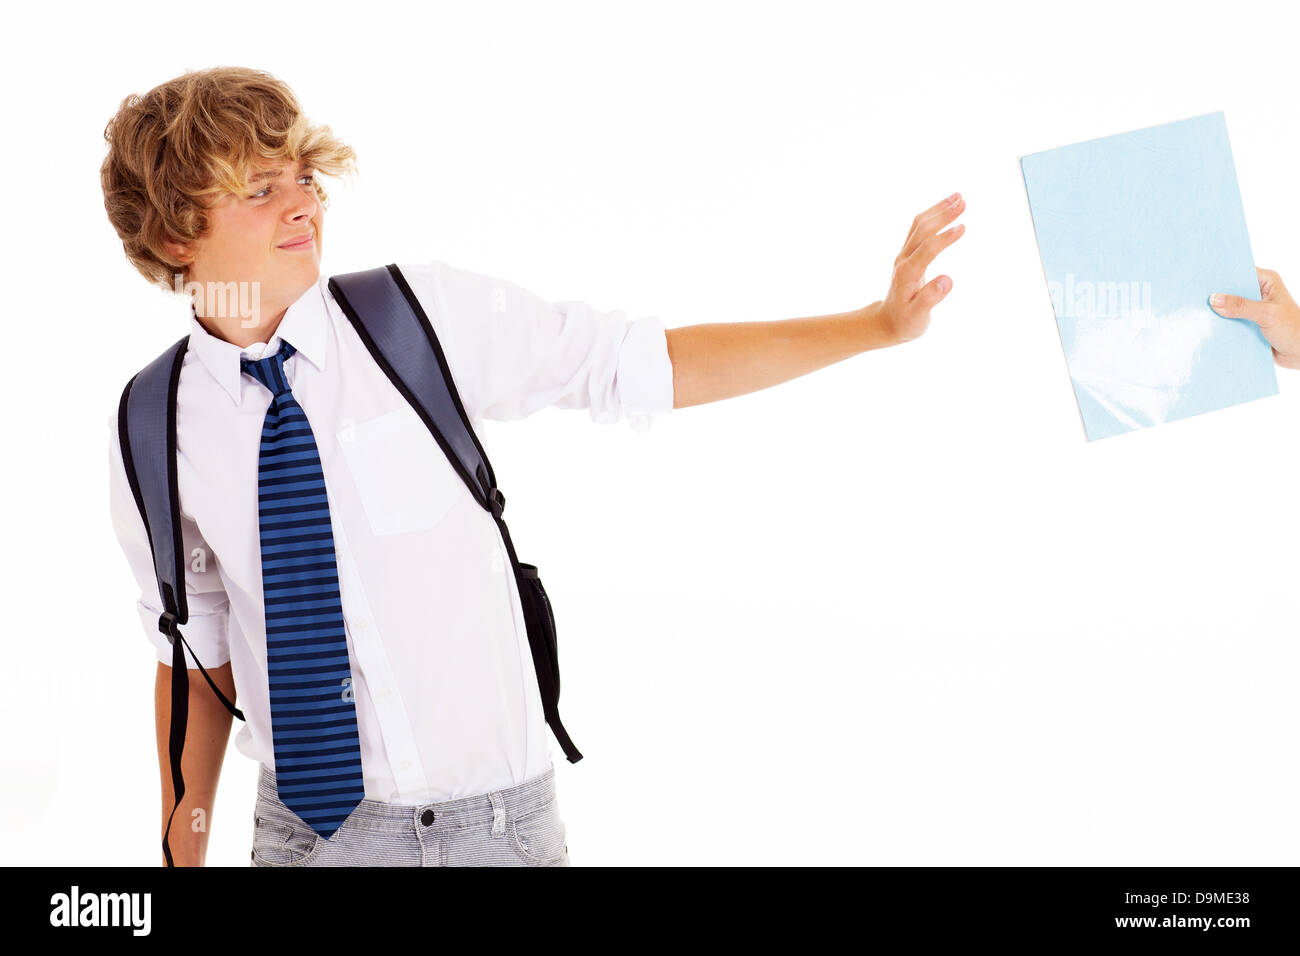 teen boy refuse to study a book - Stock Image